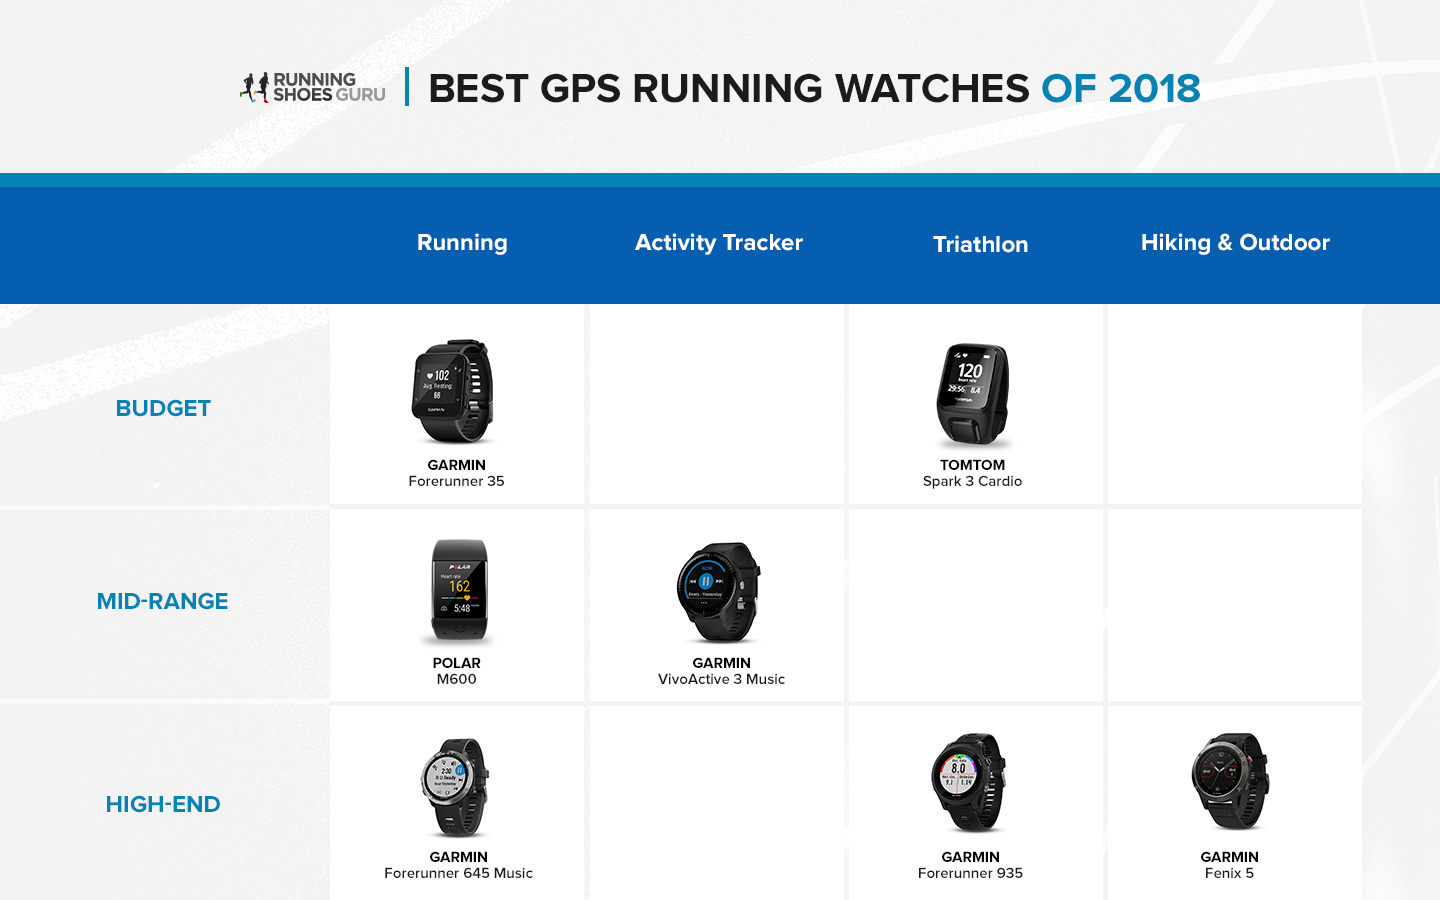 best gps running watches 2018 - running shoes guru